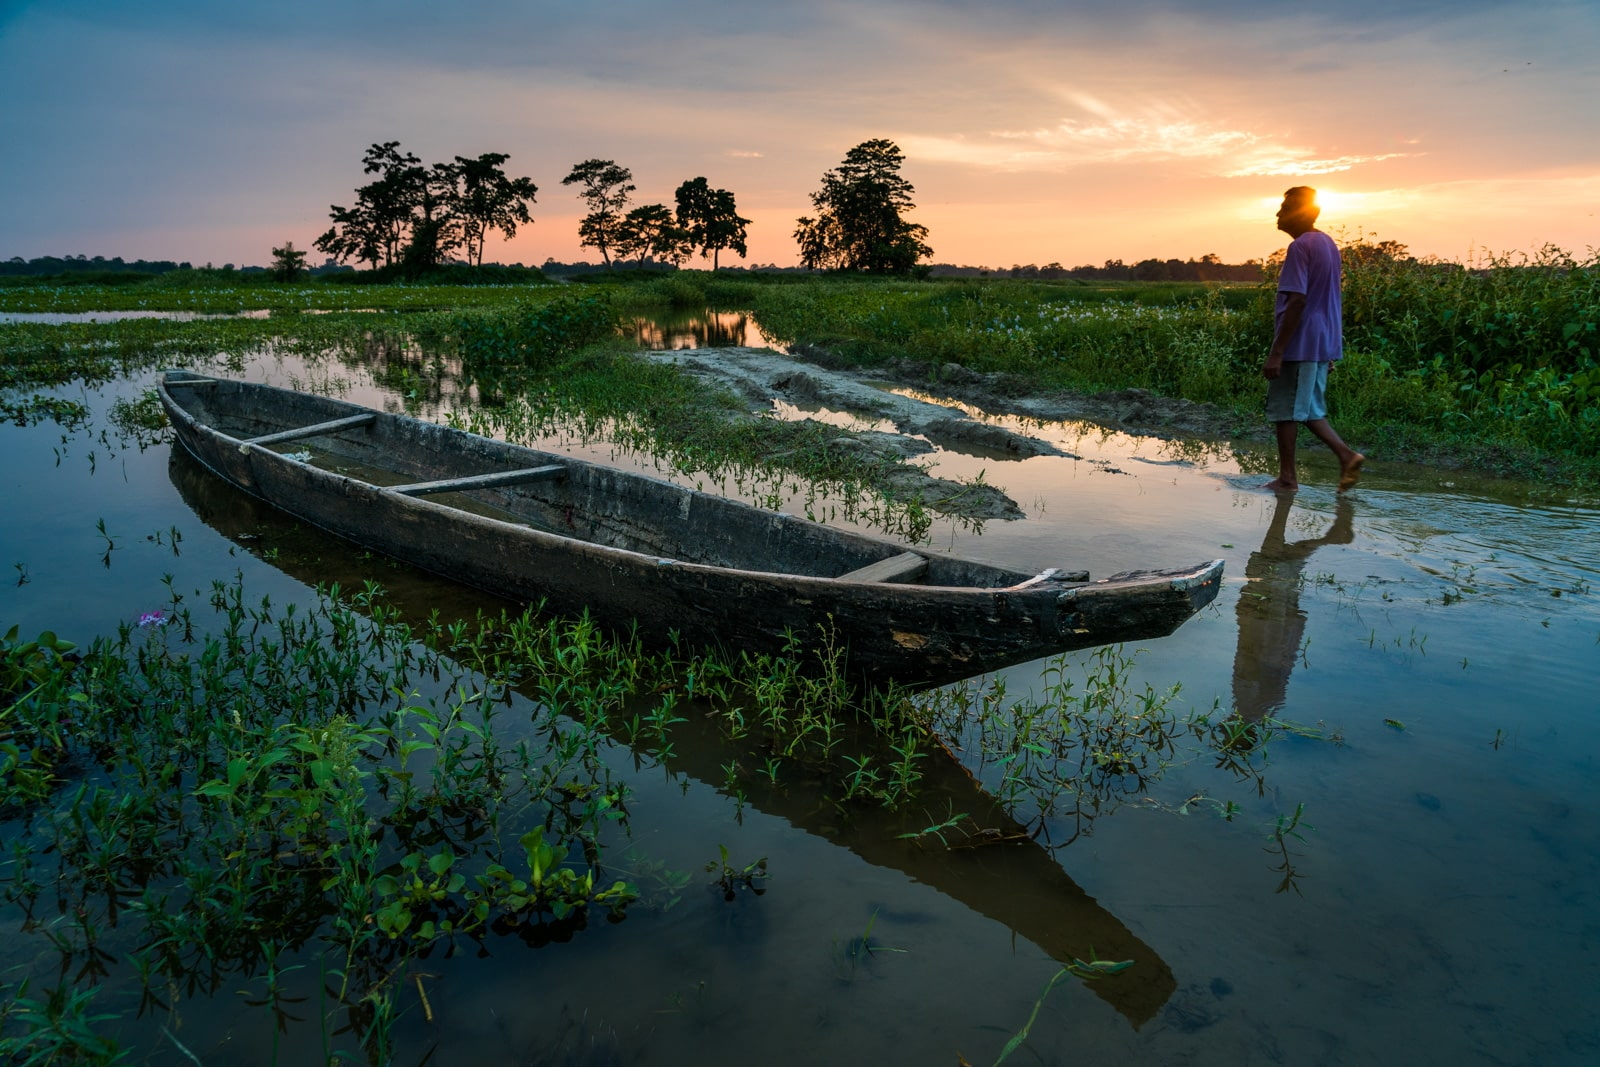 Man walking by a boat on Majuli Island, India